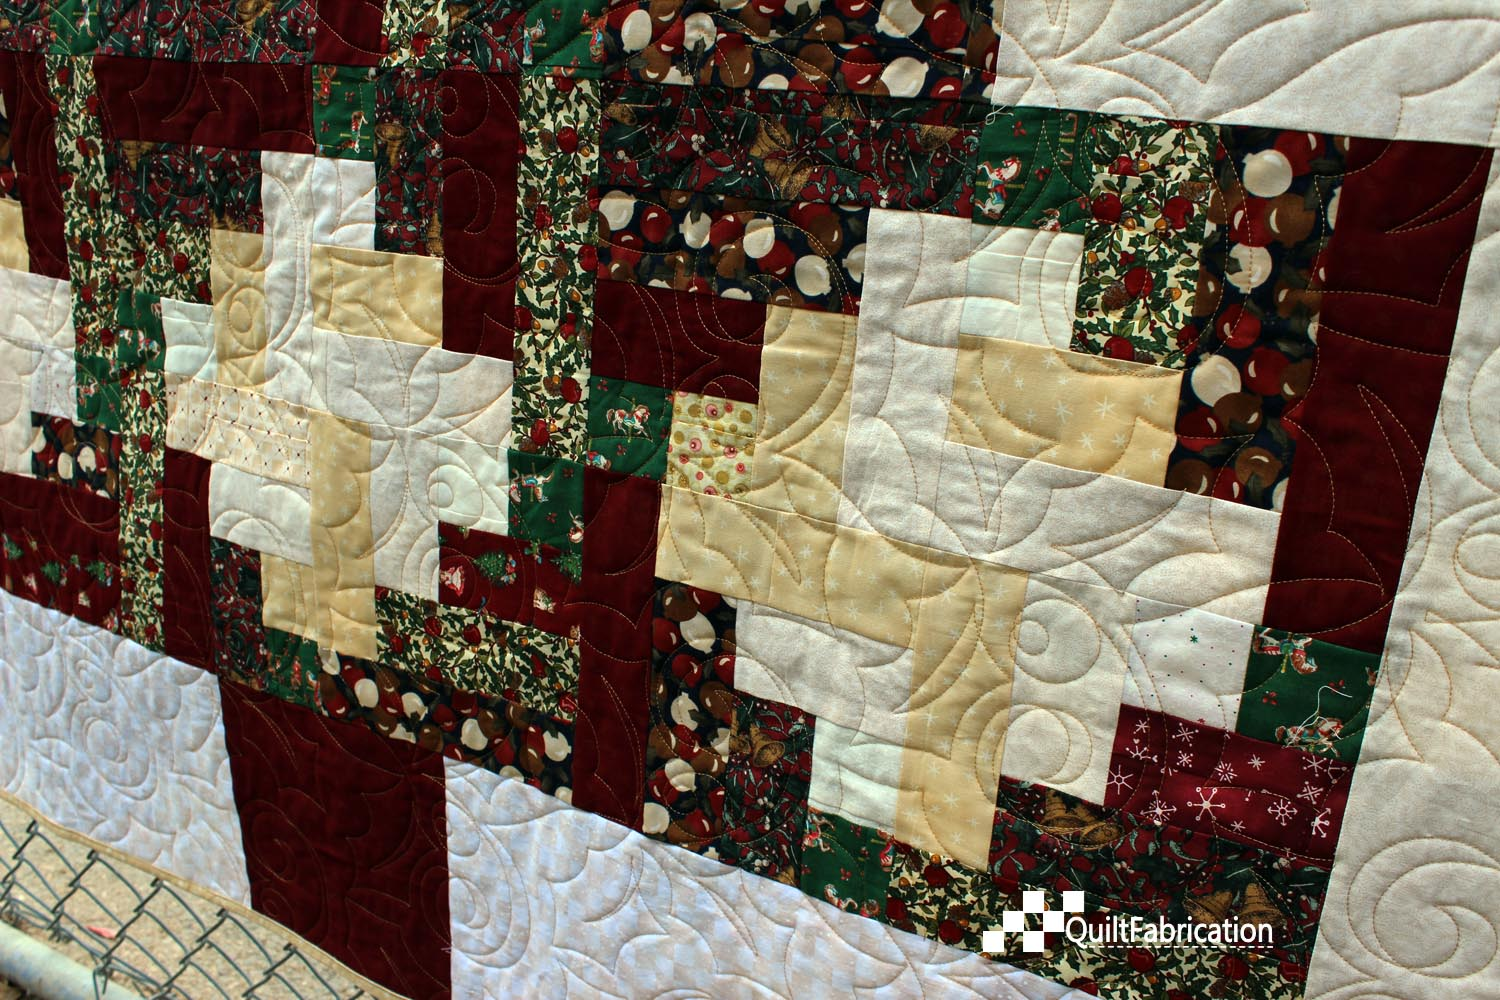 Very Impressive portraiture of For more posts about this quilt see Which Do You Like? A Christmas  with #2A1610 color and 1500x1000 pixels